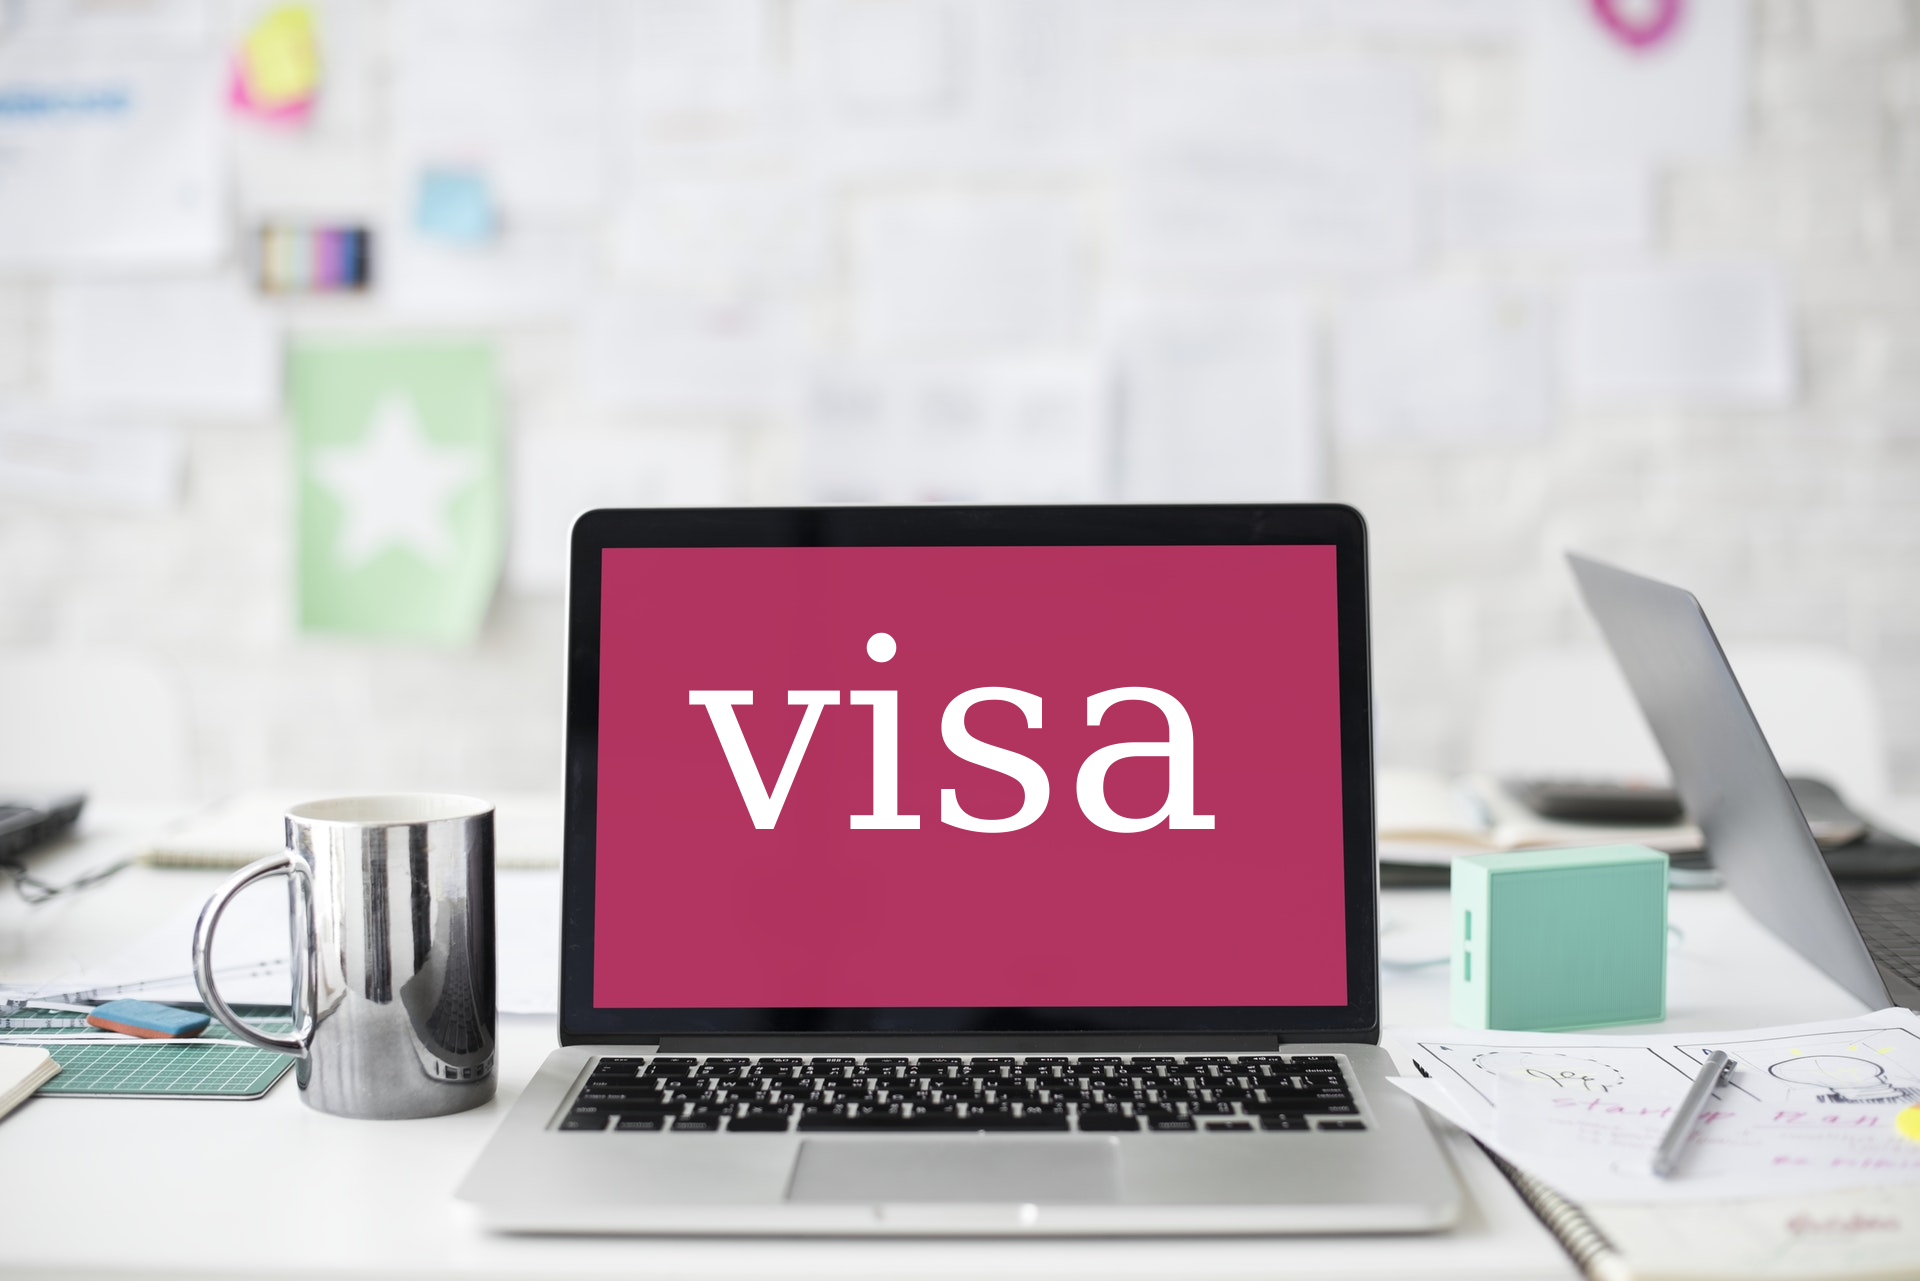 How to apply for a Chilean visa from overseas